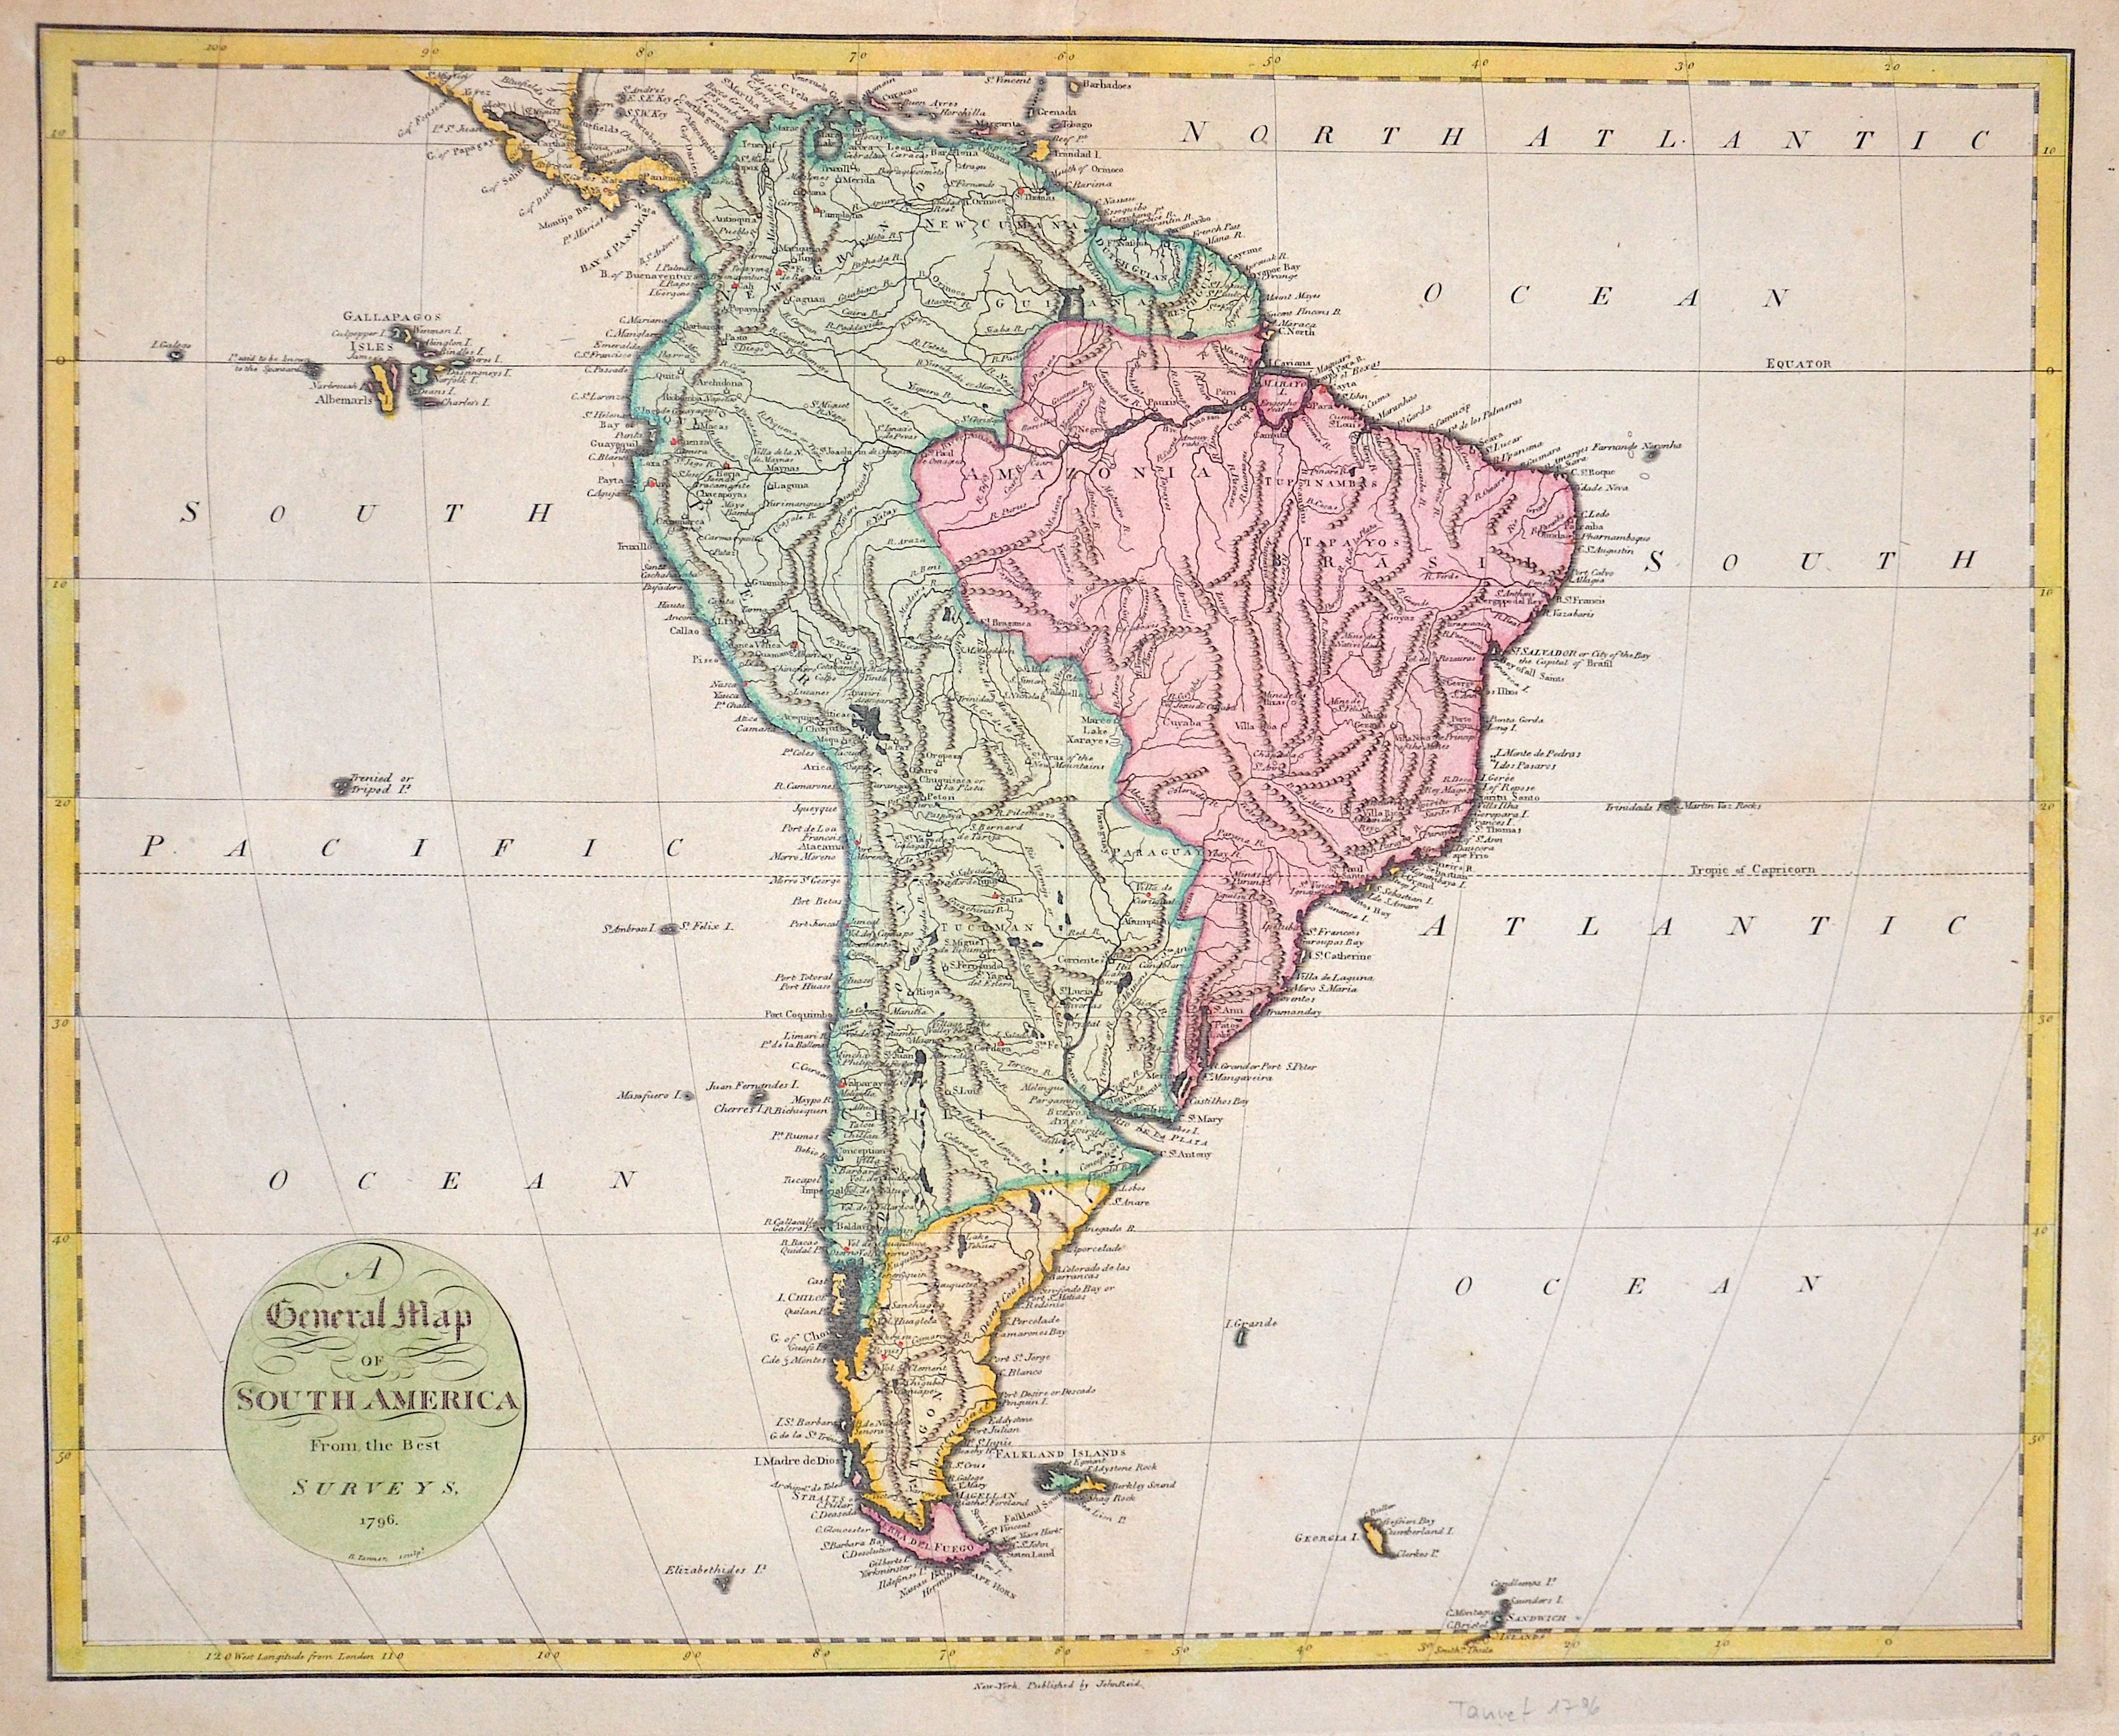 Tanner  A General Map of South America From the Best Surveys.